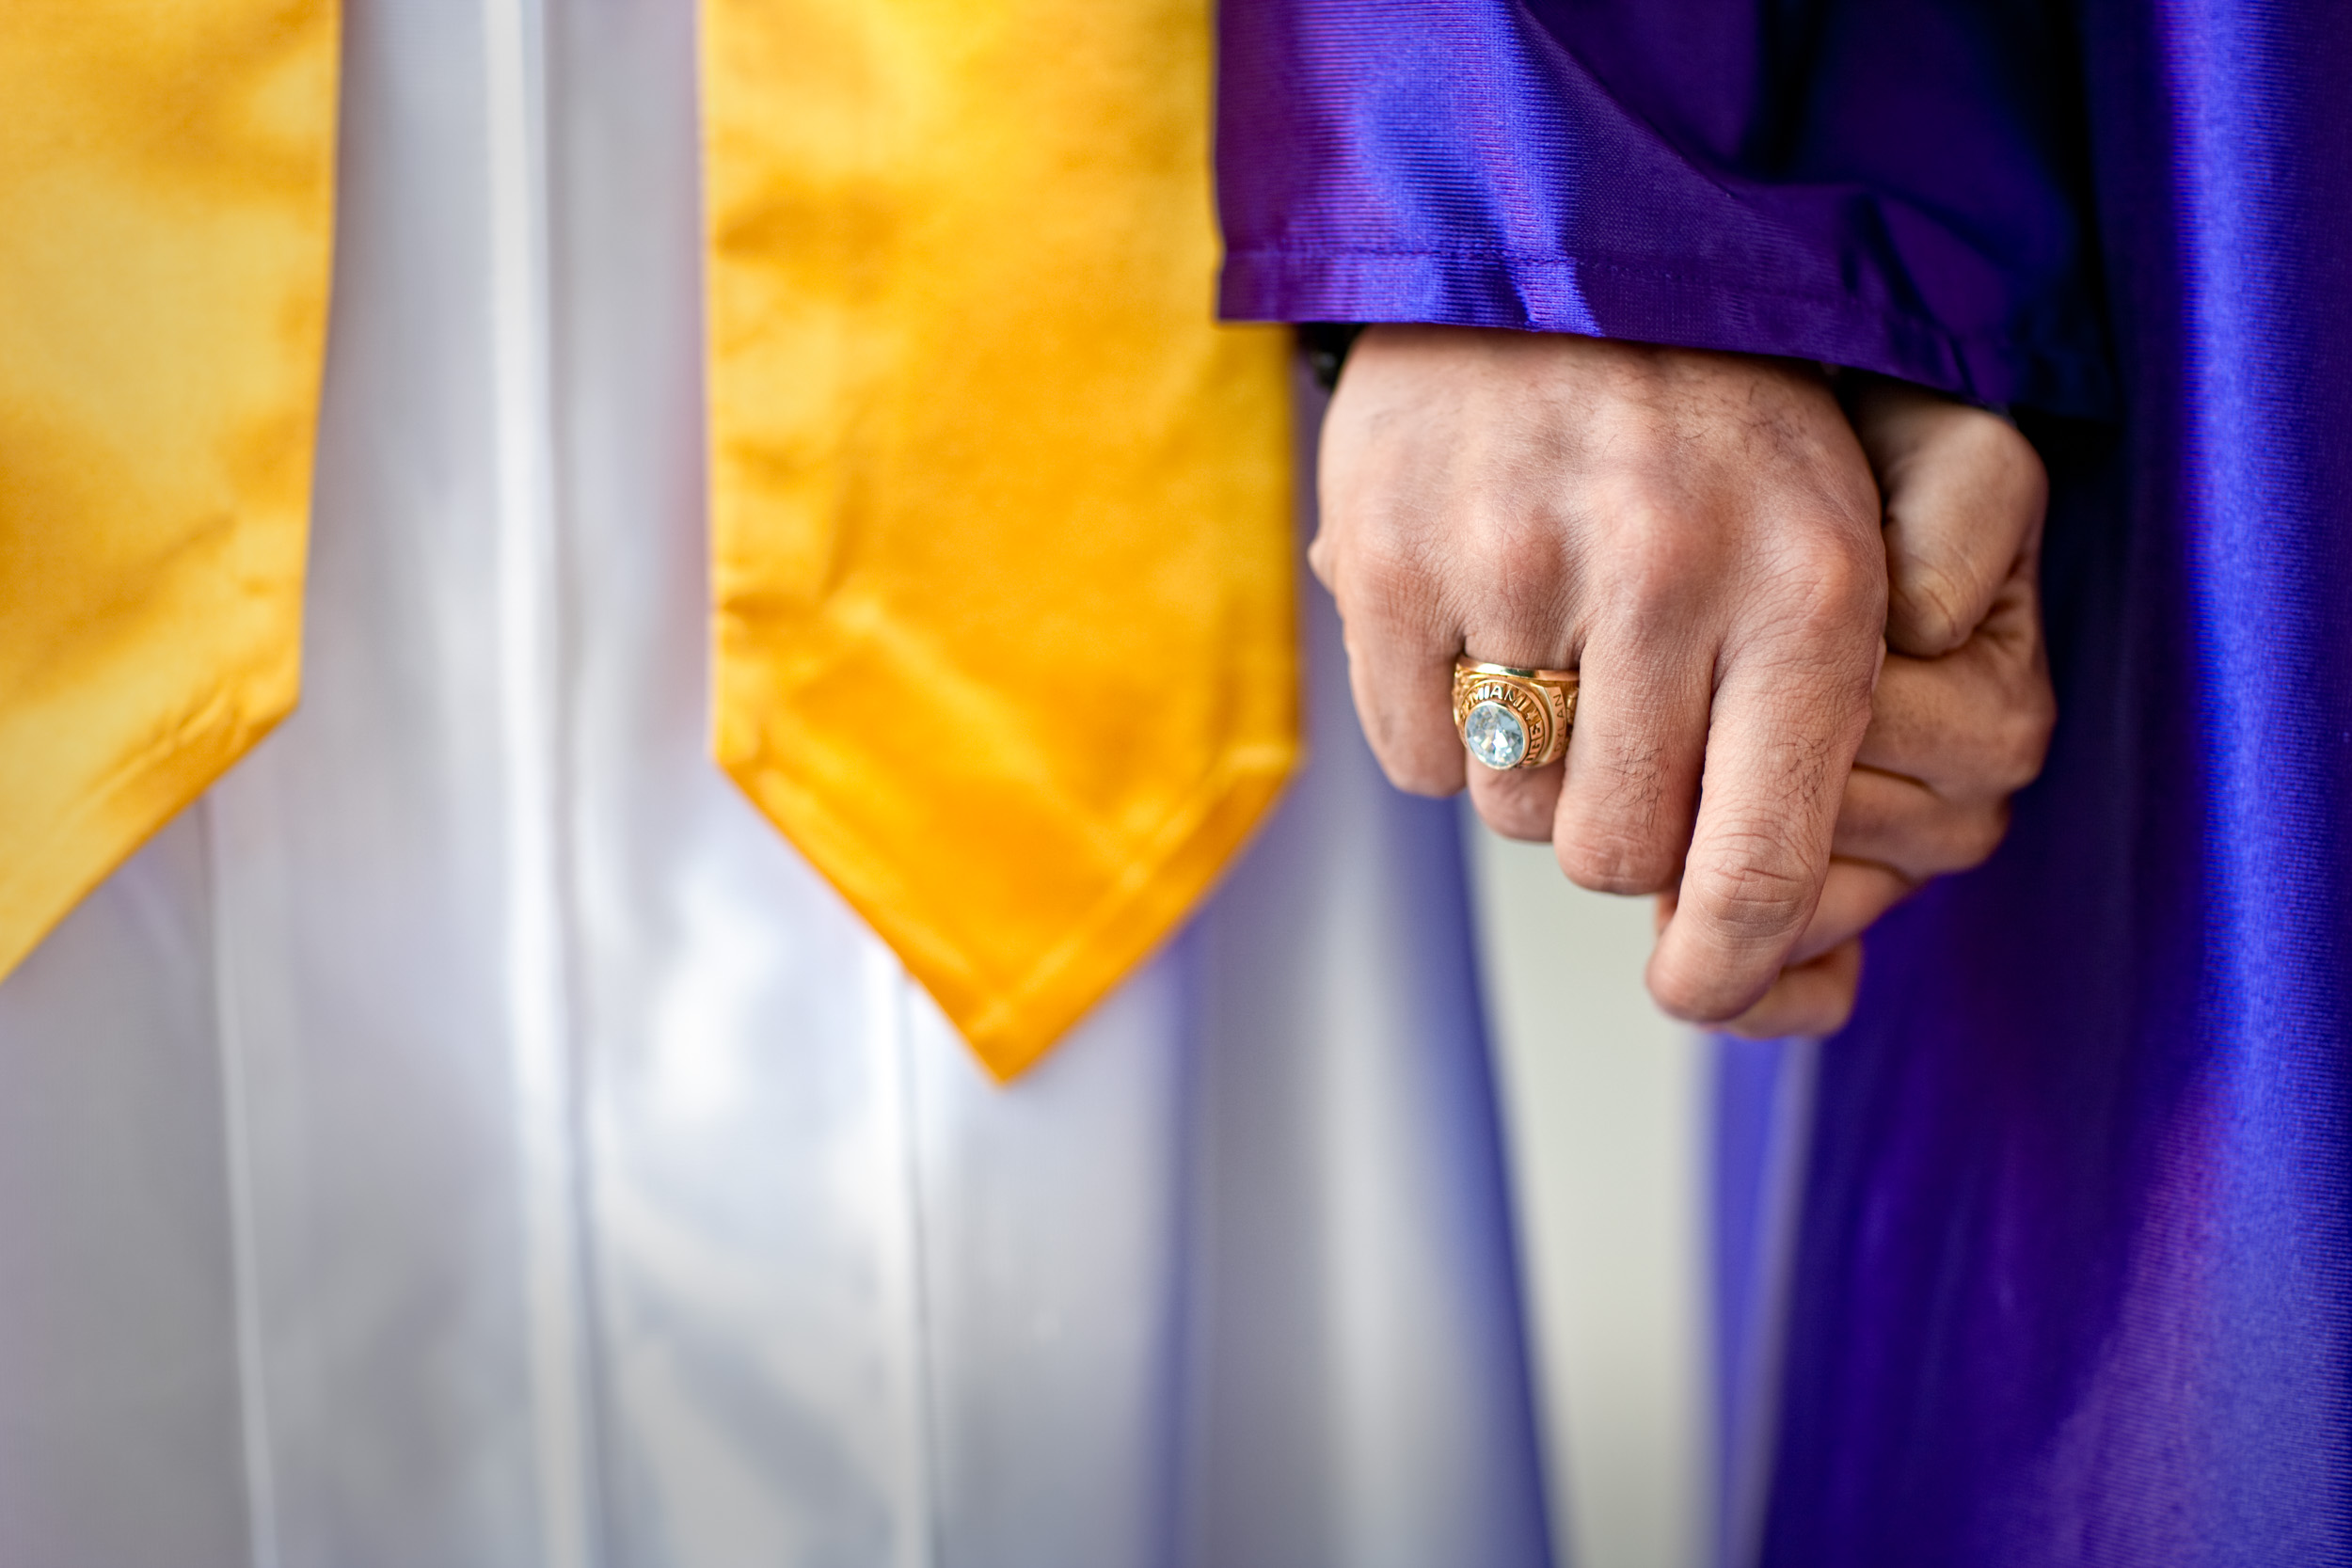 Graduates holding hands, shot by Steven P. Widoff,  editorial, lifestyle and advertising commercial photographer in Tampa, Florida.